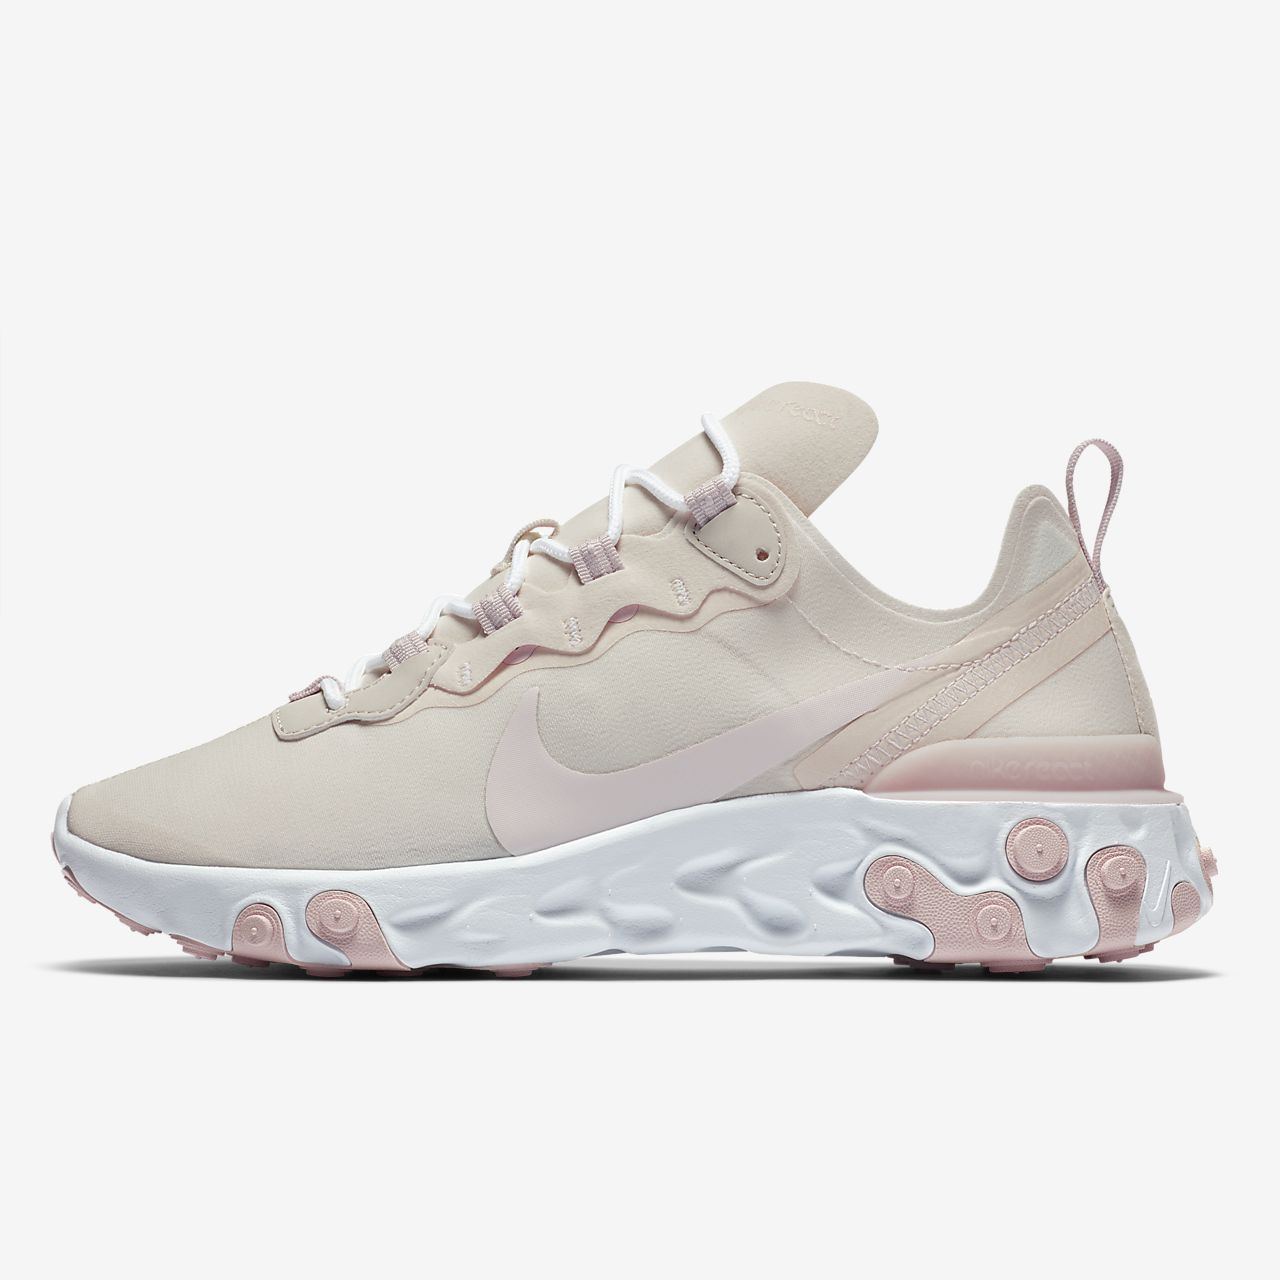 Best Nike Shoes For Hiking In 2019 | Review Going Fit Unfit